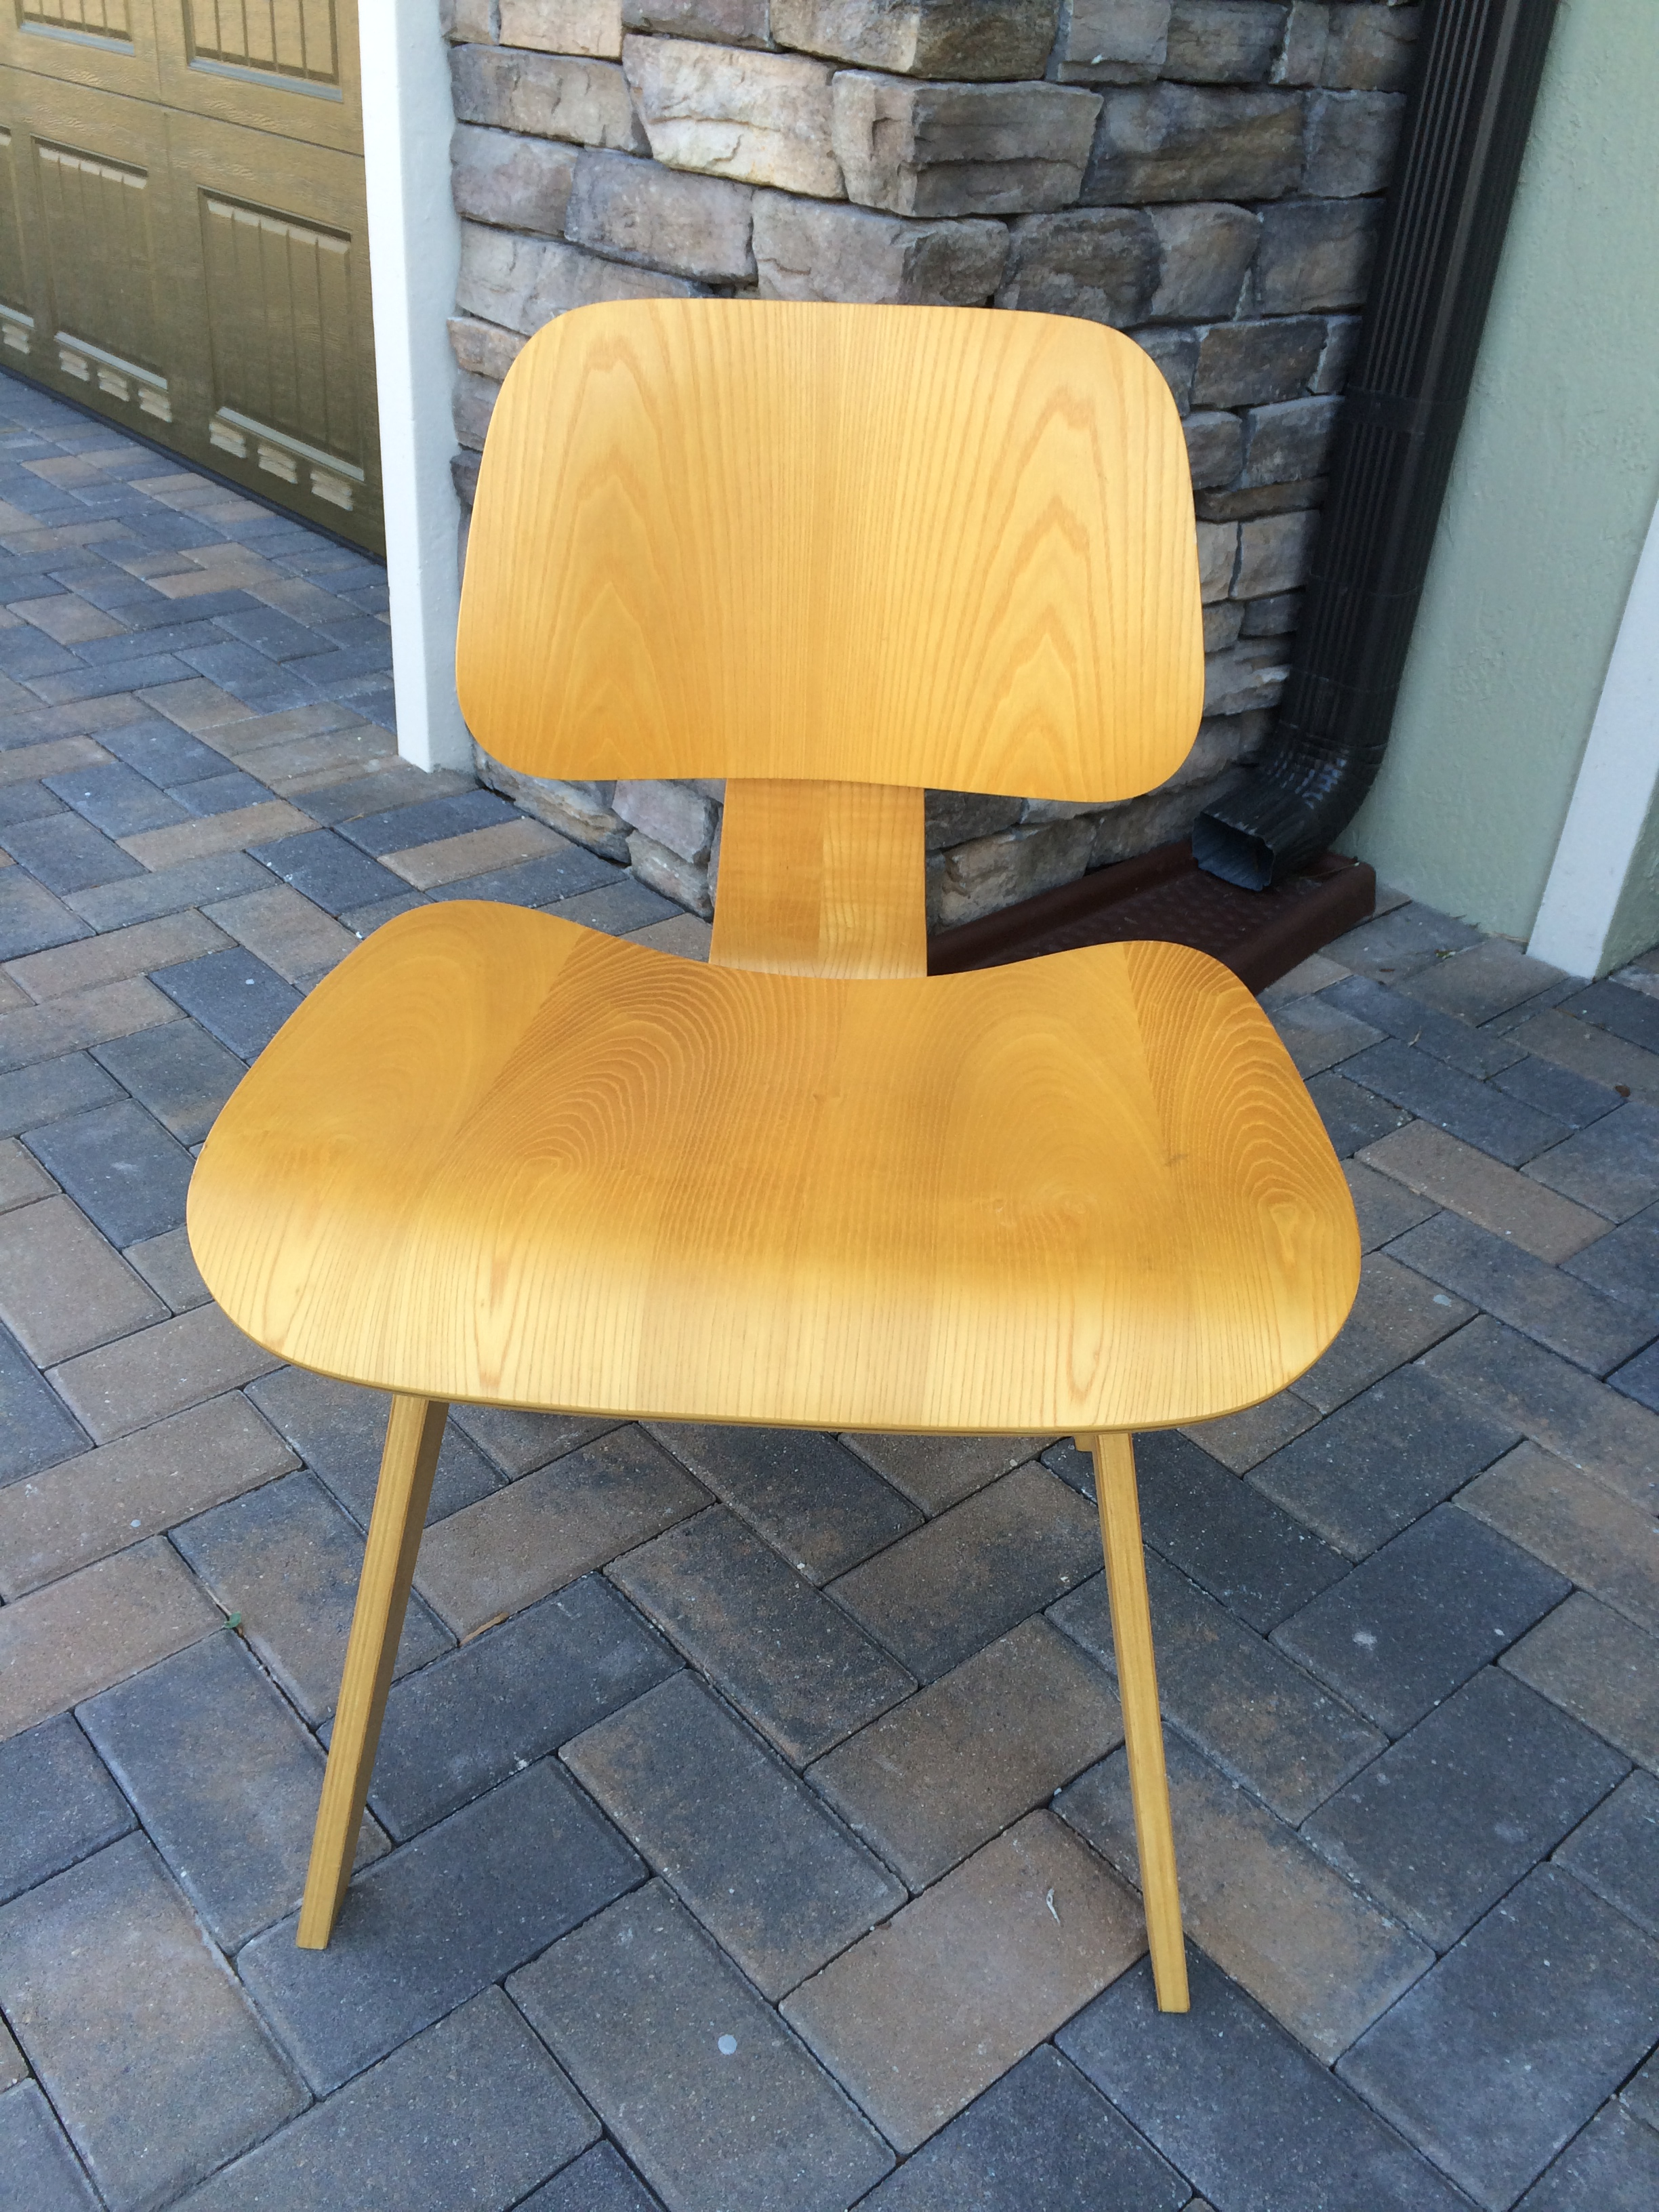 These Four Authentic Herman Miller Eames Chairs Are In